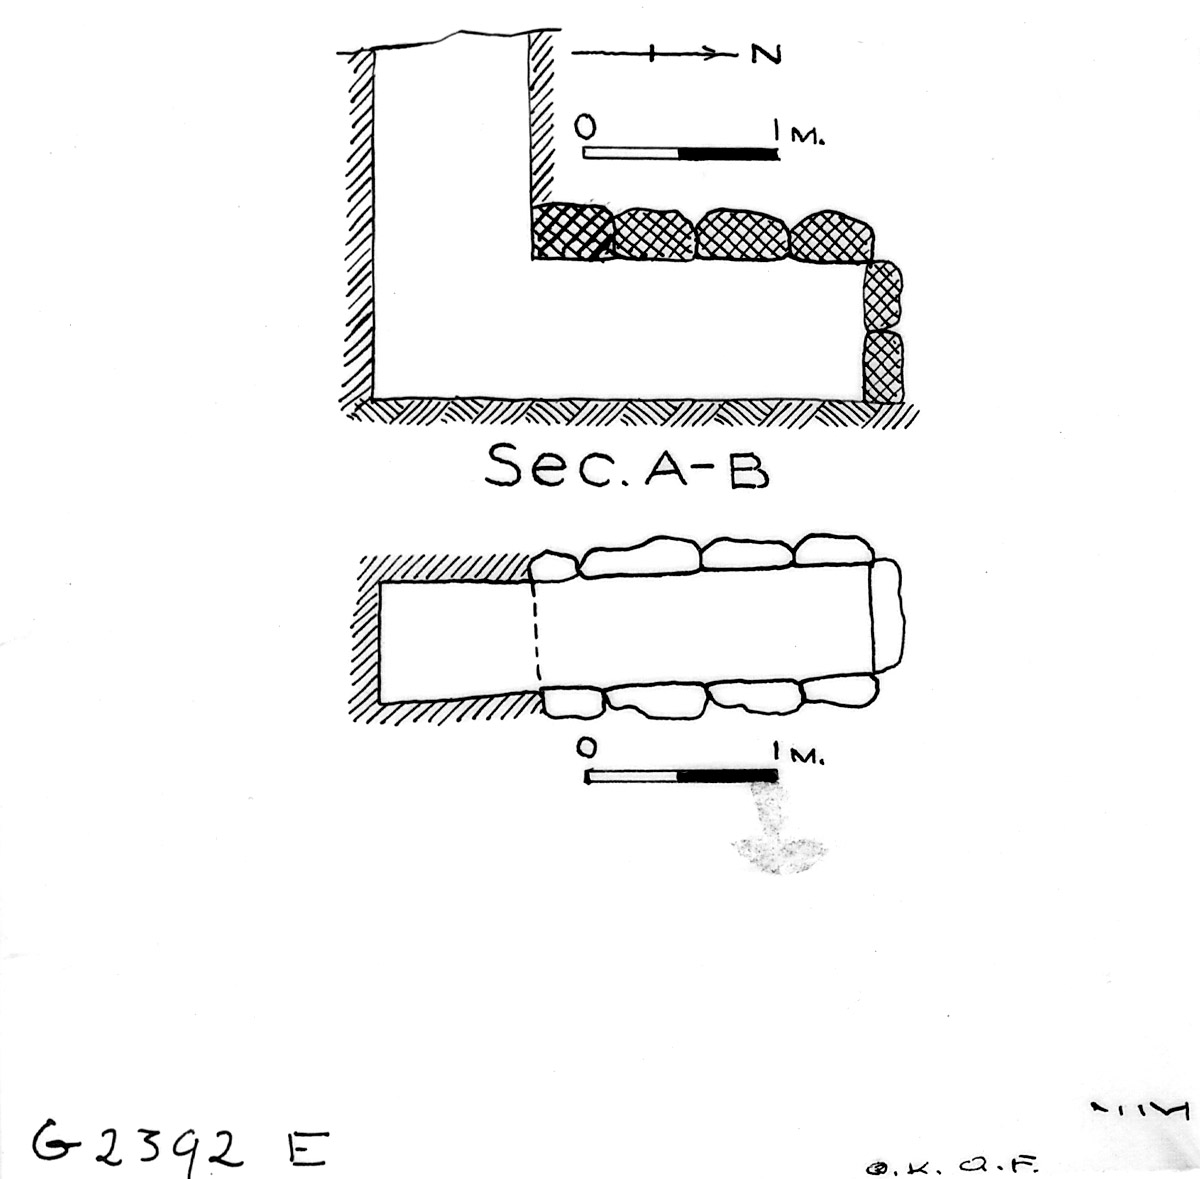 Maps and plans: G 2392, Shaft E